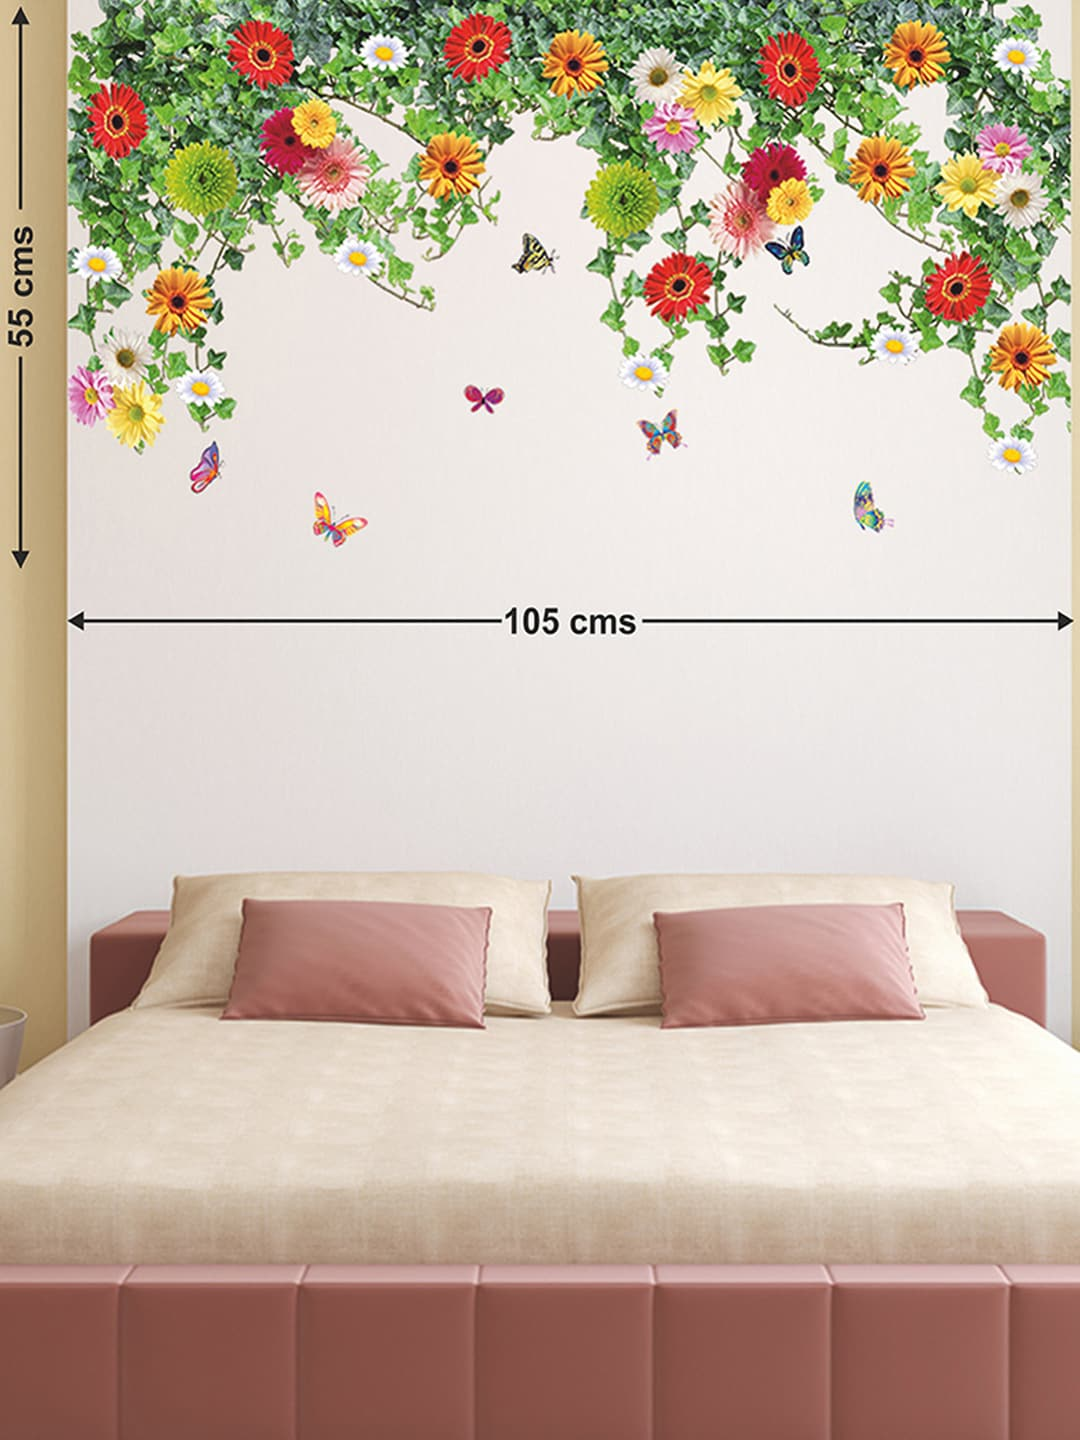 Stickers decals online buy stickers online in india myntra amipublicfo Gallery